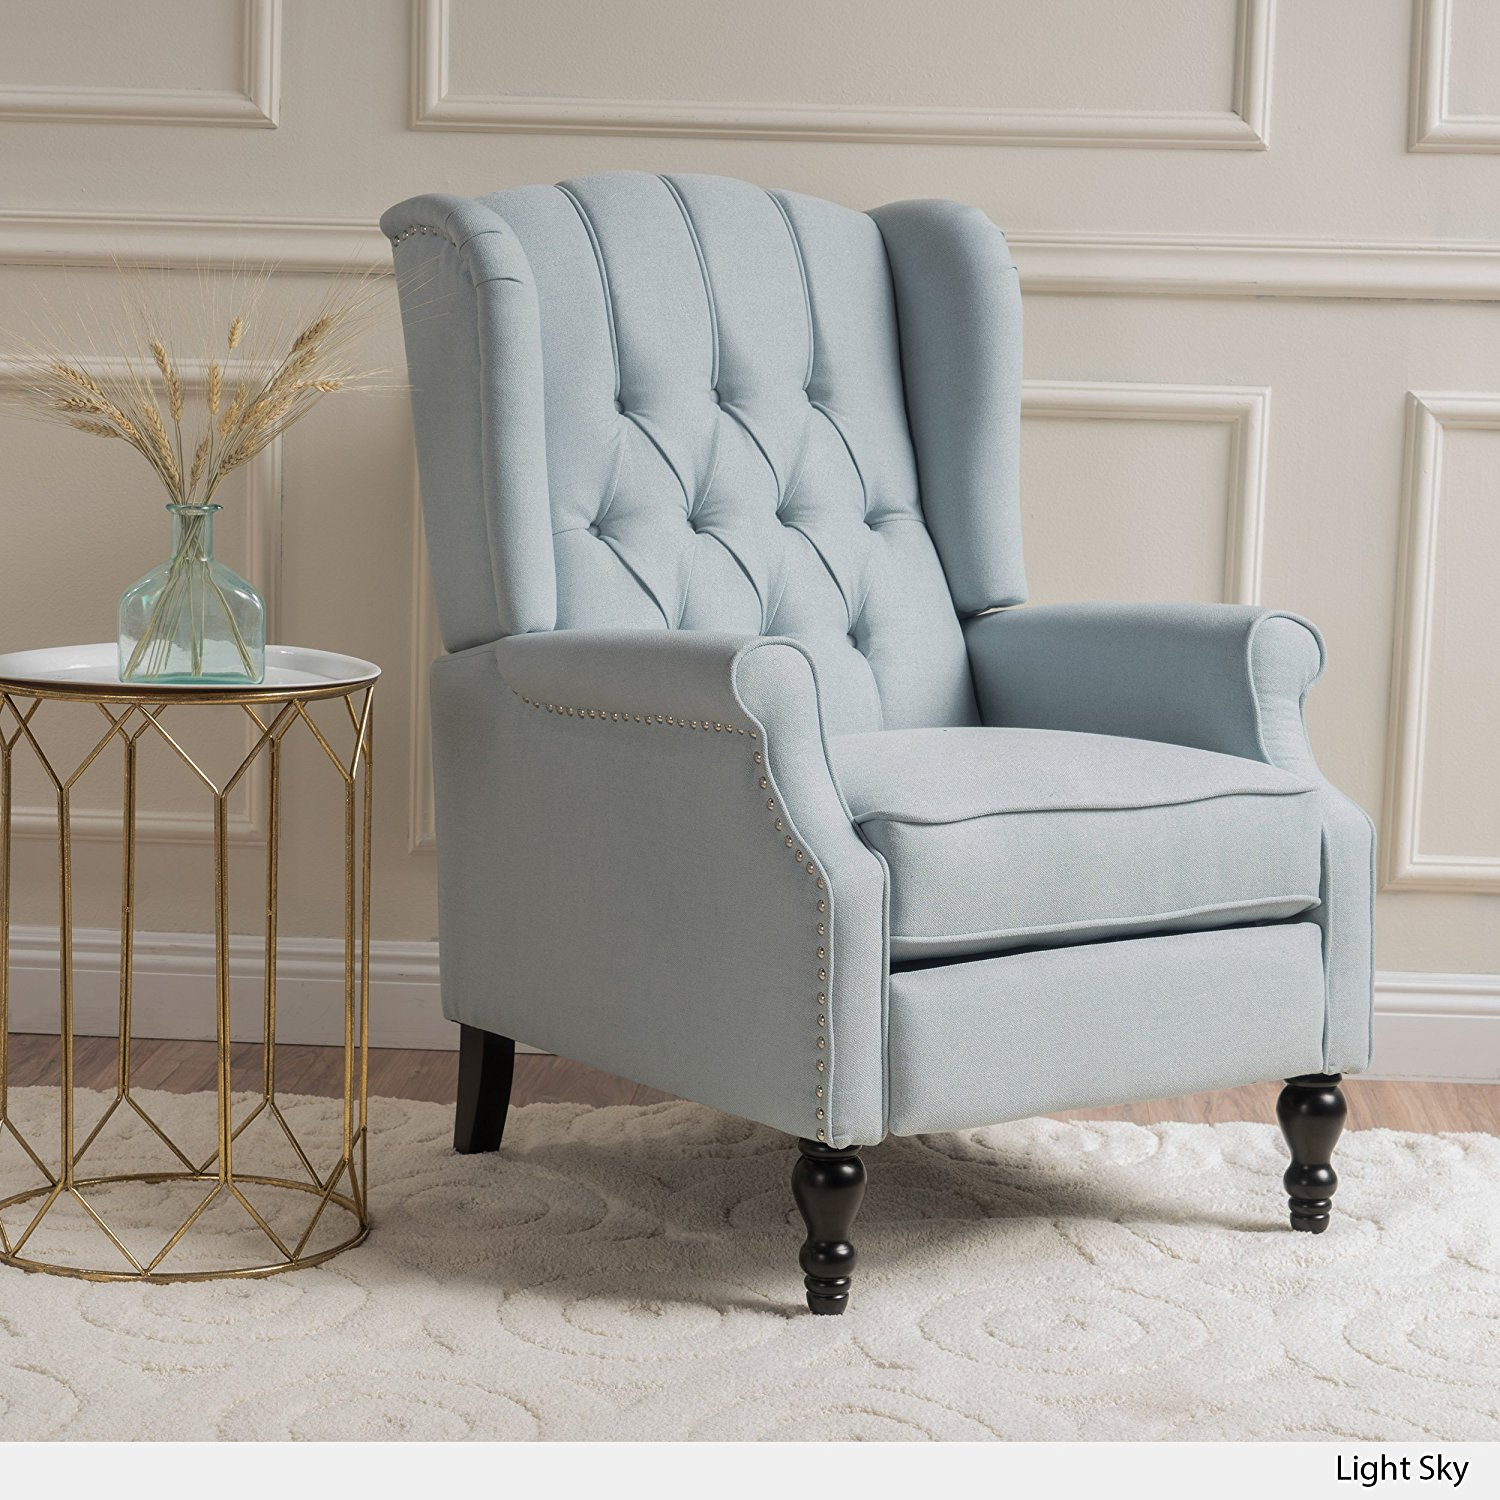 10 Best Cozy Chairs For Living Rooms Most Comfortable Chairs For Reading